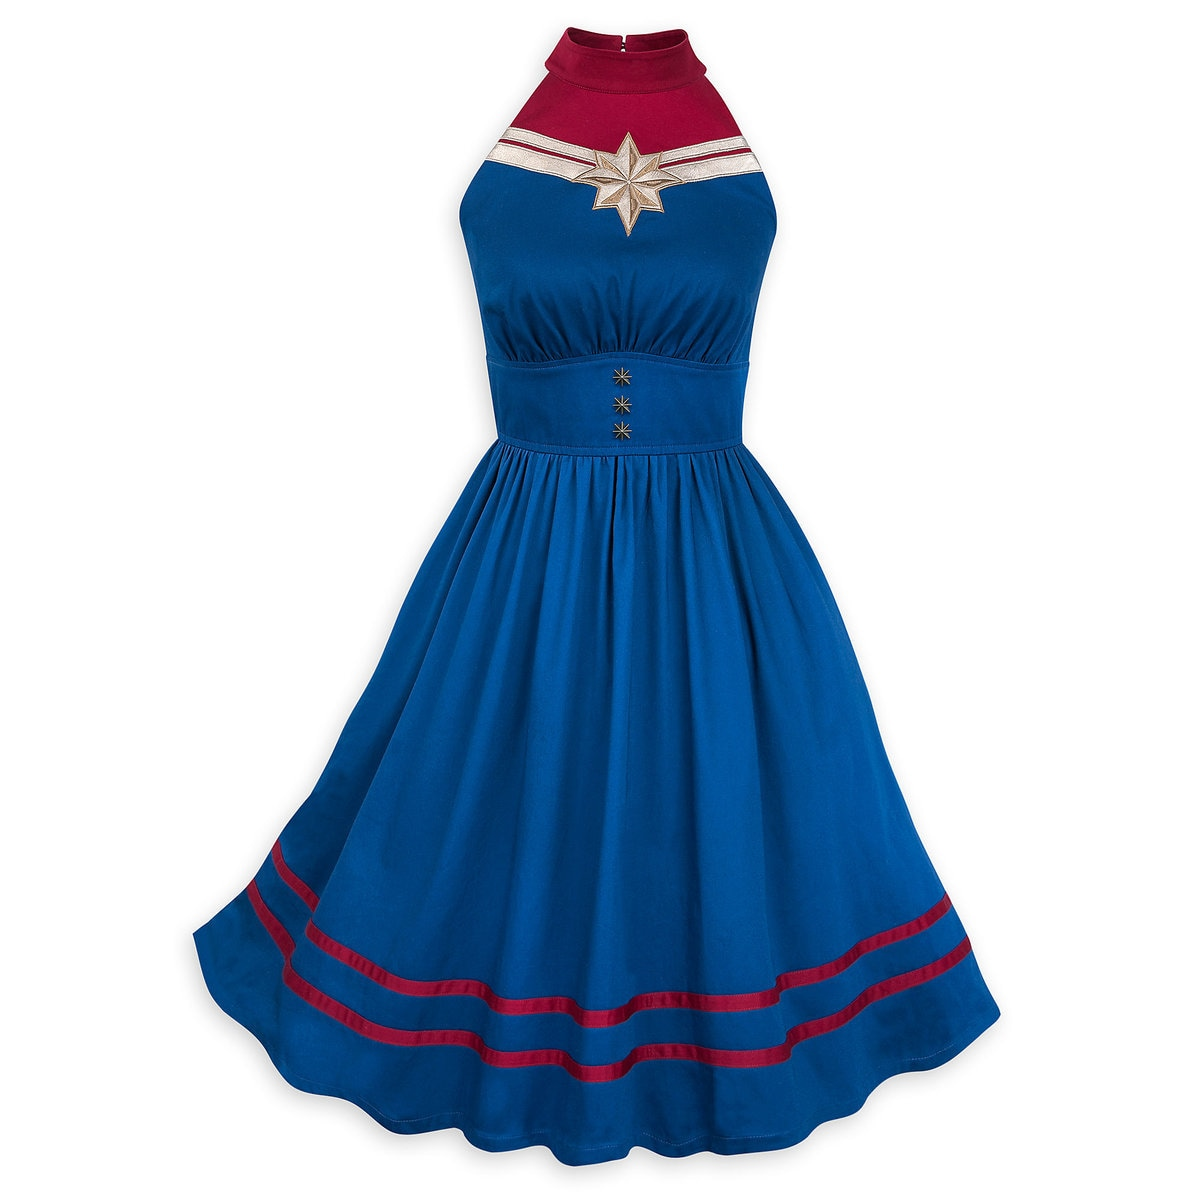 4b1d2f9c72 Product Image of Marvel's Captain Marvel Dress for Women by Her Universe # 1